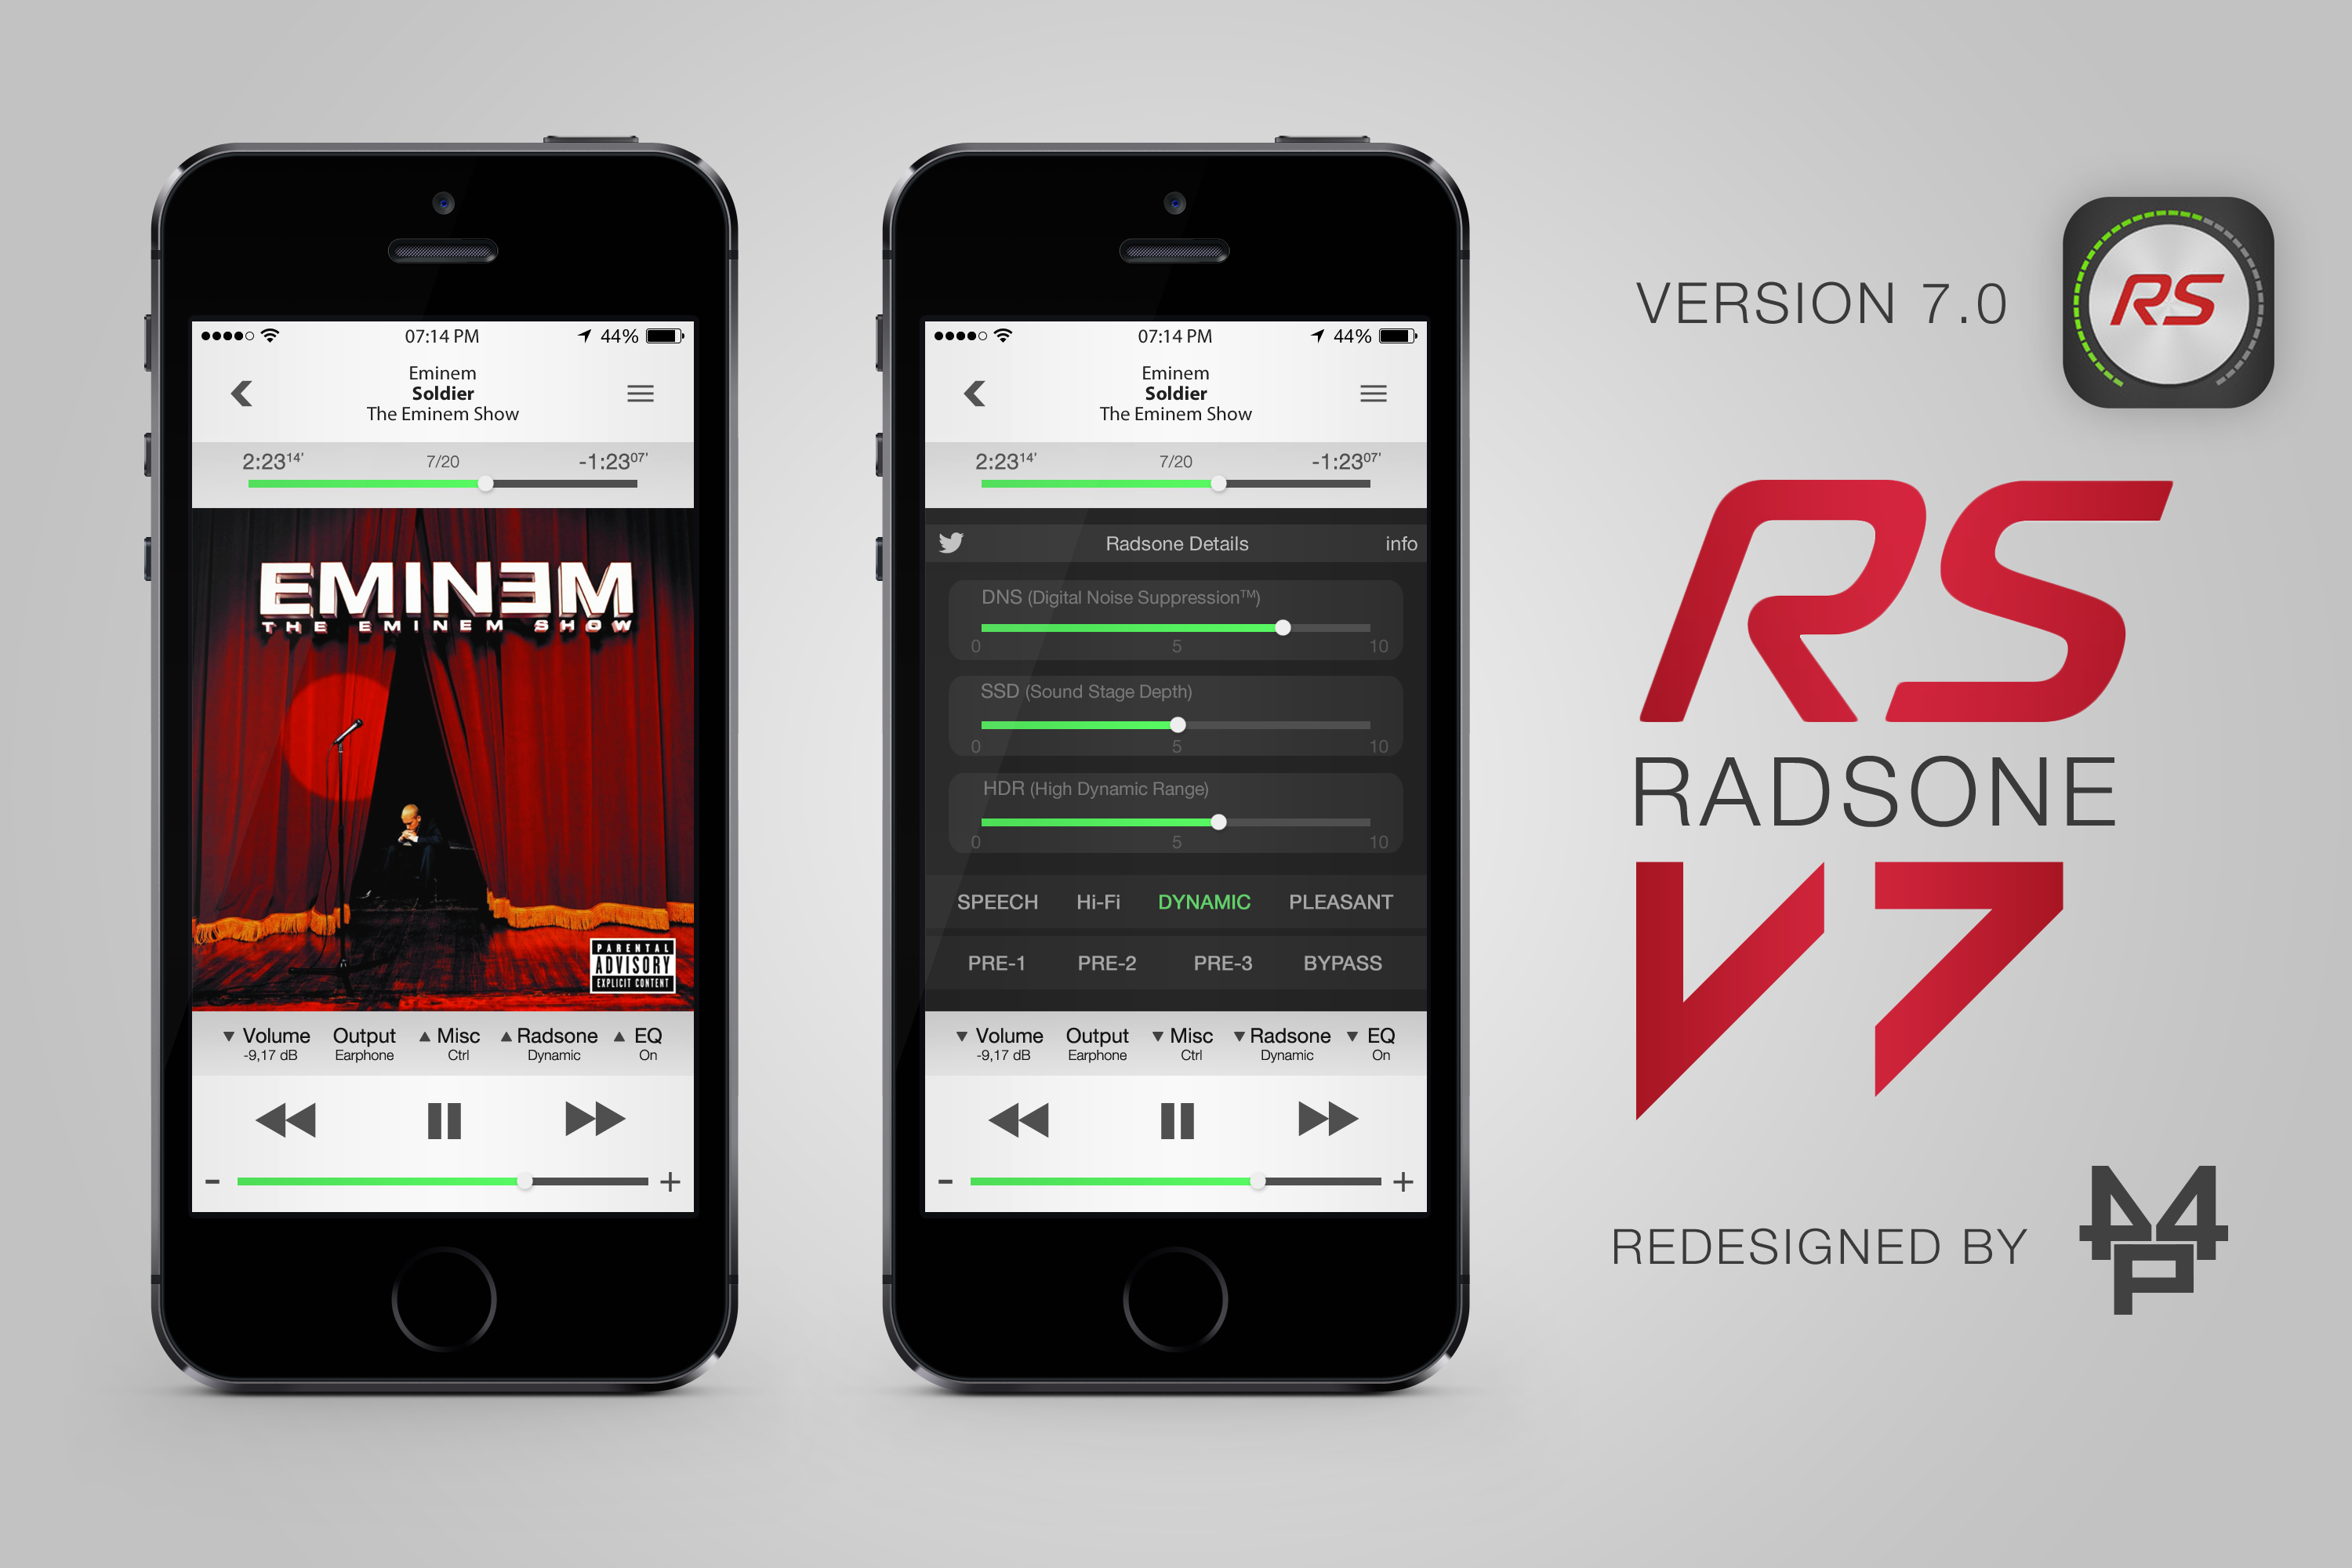 RADSONE IPHONE APP CONCEPT - 44MP (3000x2000 px) by ...